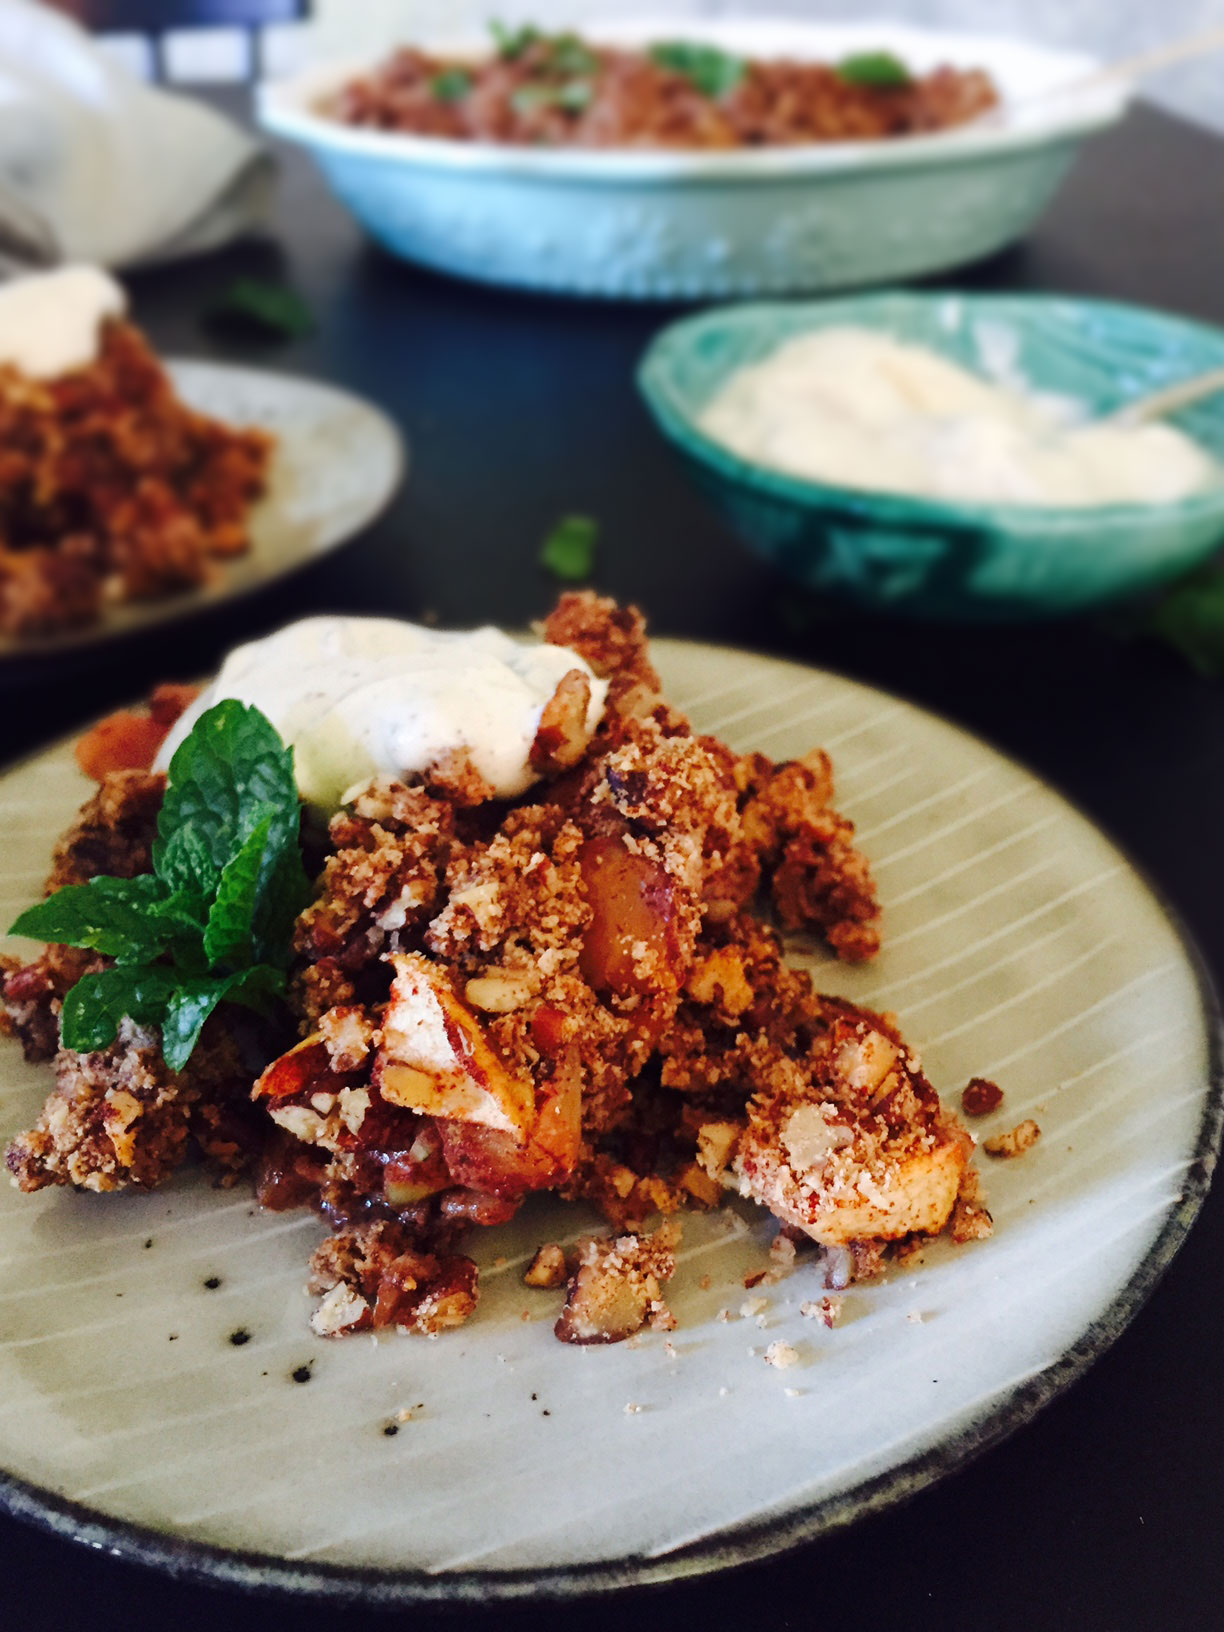 how to make gluten free crumble